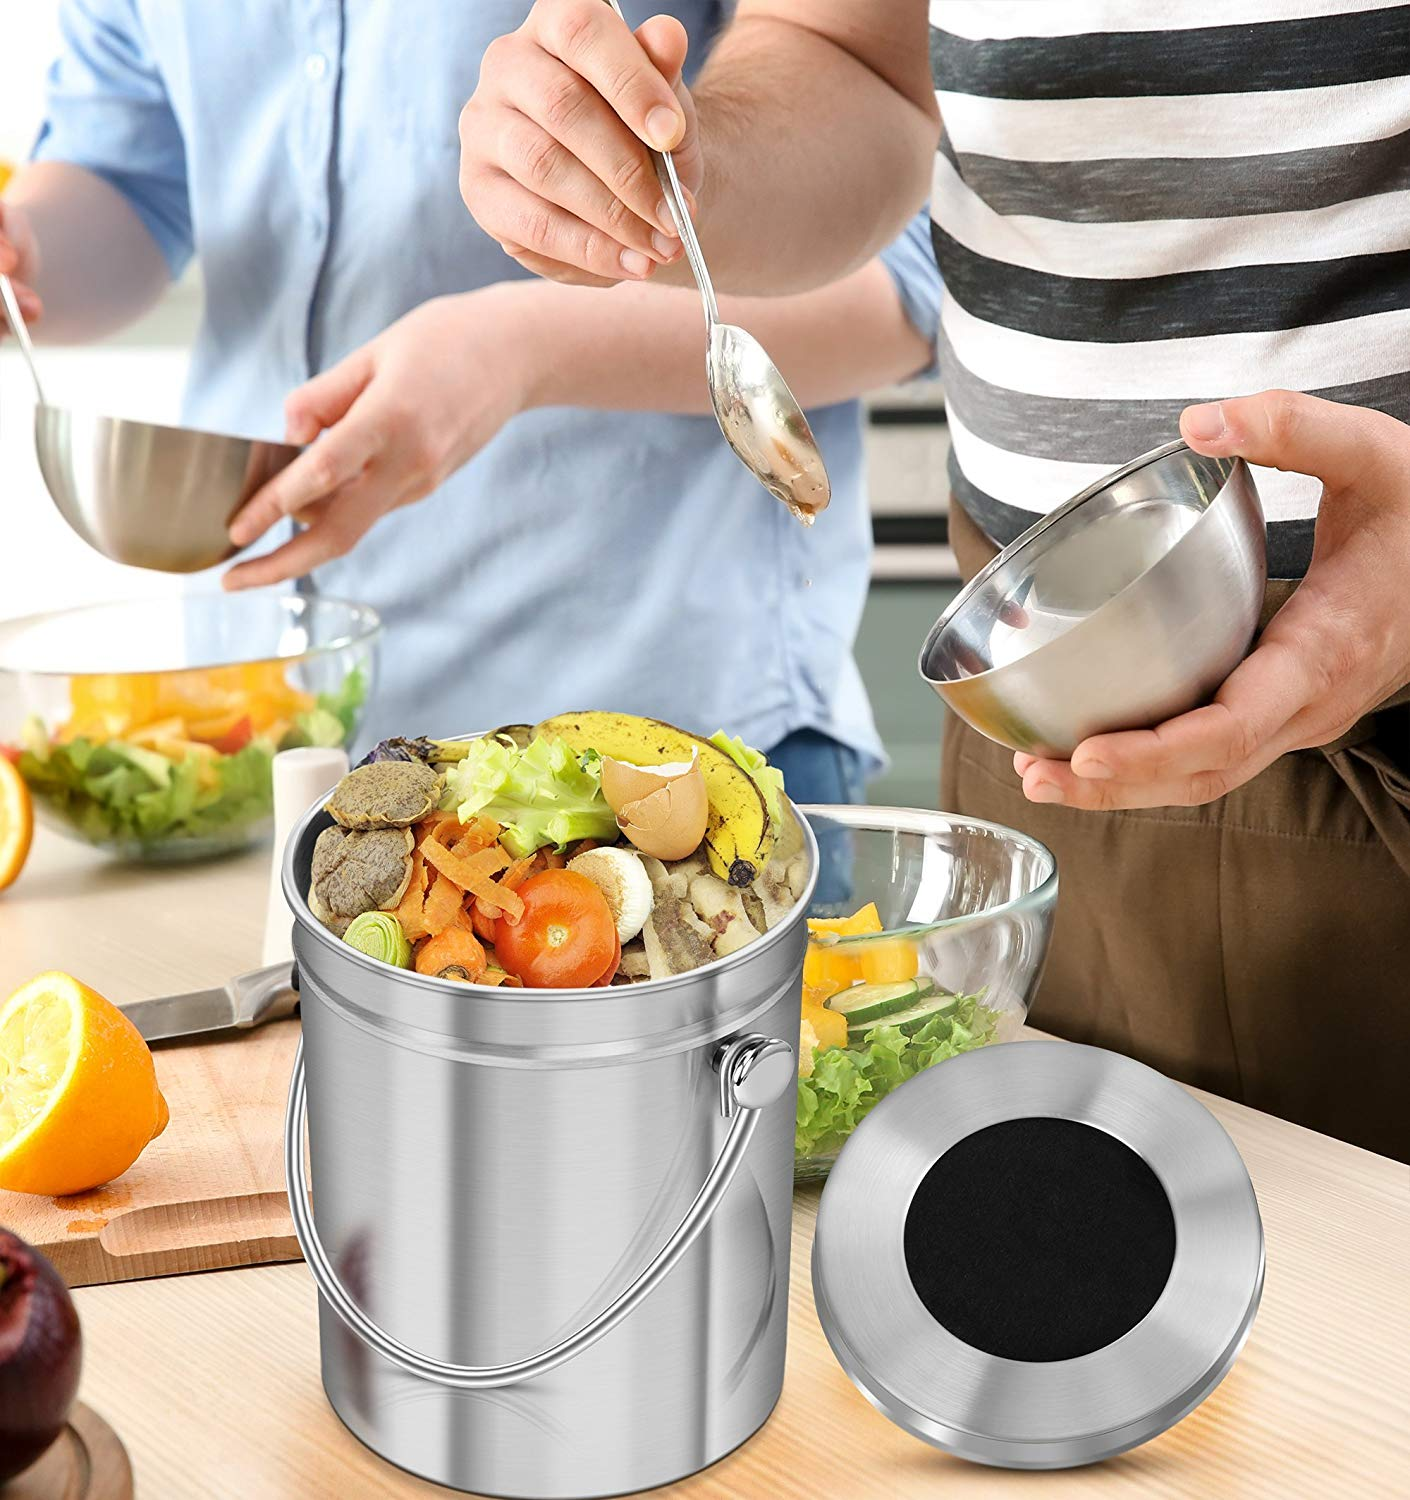 Kitchen Stainless Steel Compost Bin for Kitchen Countertop 1.3 Gallon Compost Bucket Kitchen Pail Compost with Lid